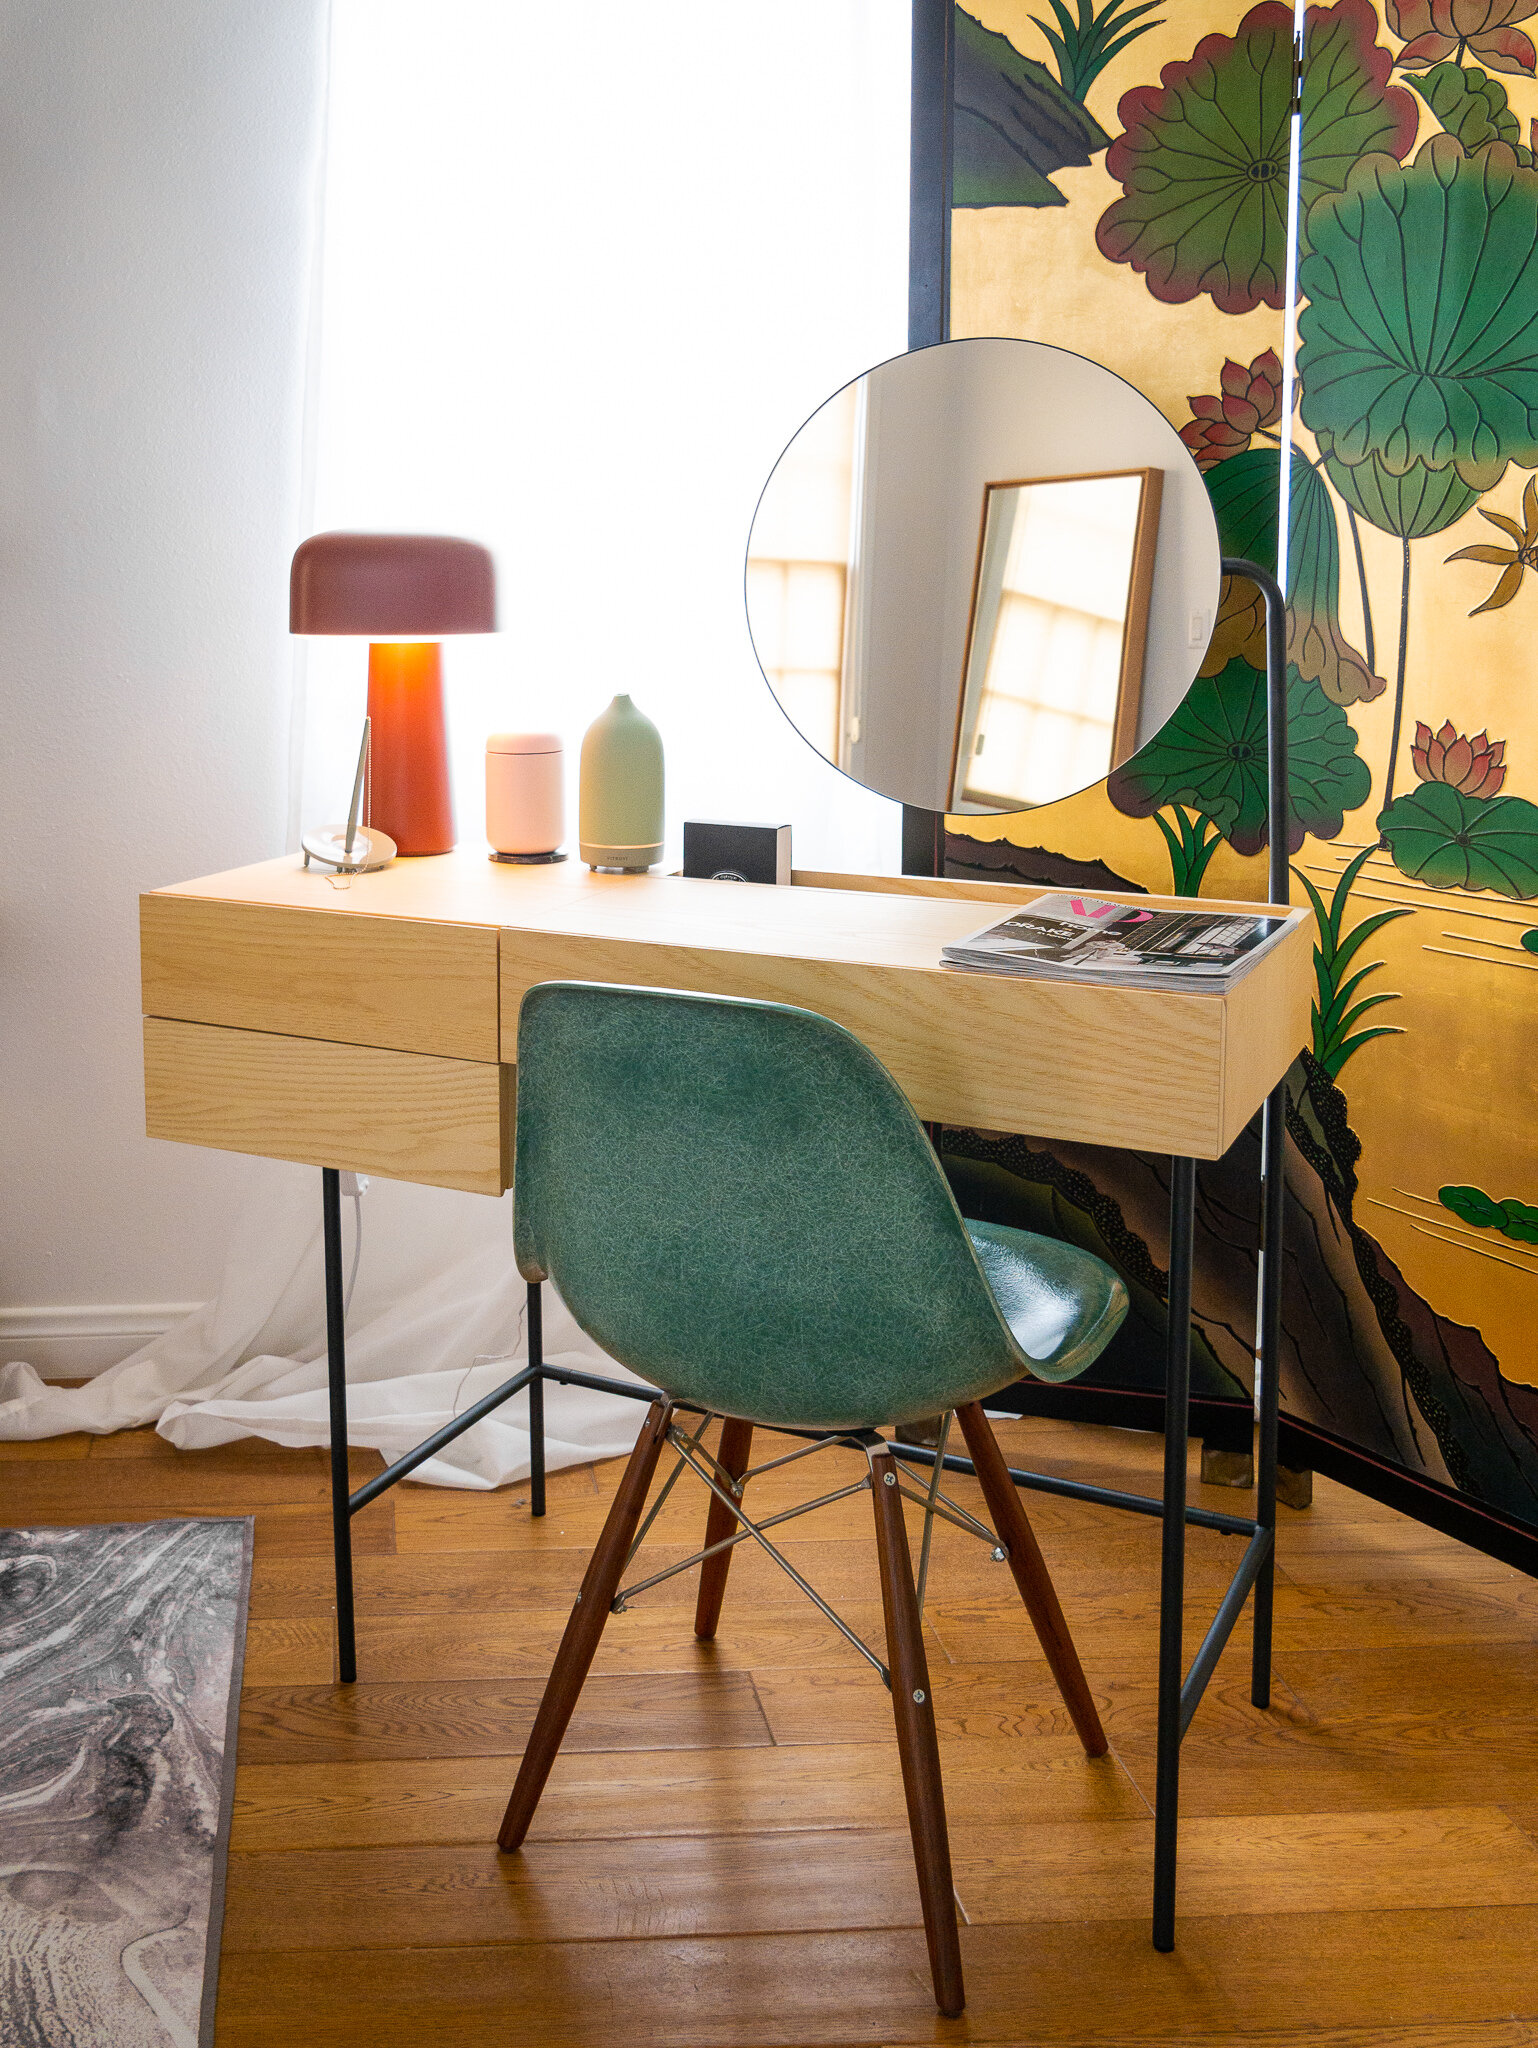 Friday Finds Is It A Desk Or Vanity Introducing Dims Composed Vanity Desk Mybelonging Modern Lifestyle Home Interiors And Design Travel And Menswear